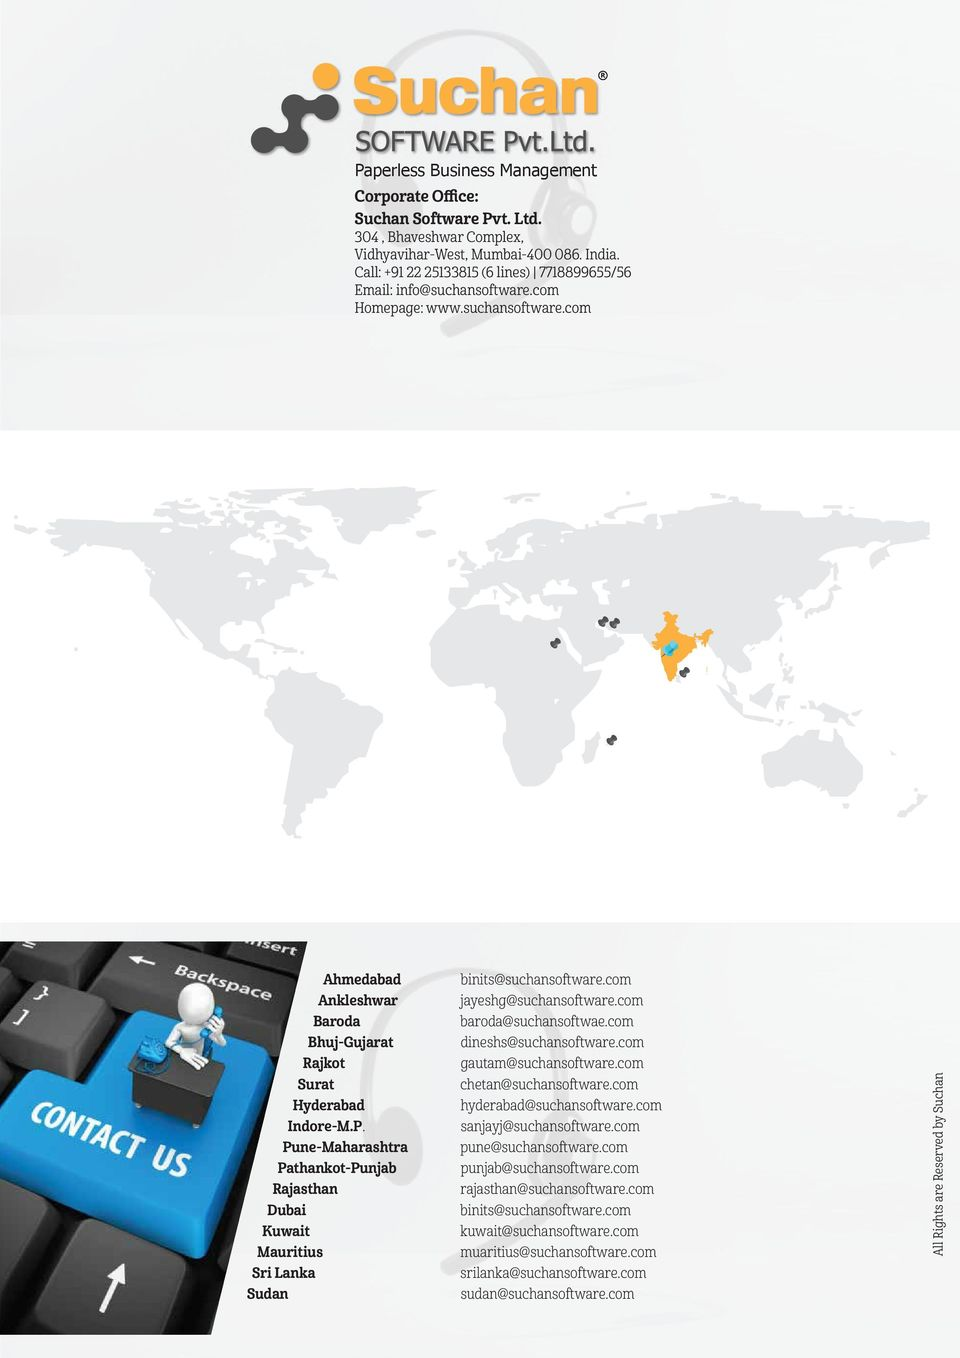 Pune-Maharashtra Pathankot-Punjab Rajasthan Dubai Kuwait Mauritius Sri Lanka Sudan binits@suchansoftware.com jayeshg@suchansoftware.com baroda@suchansoftwae.com dineshs@suchansoftware.